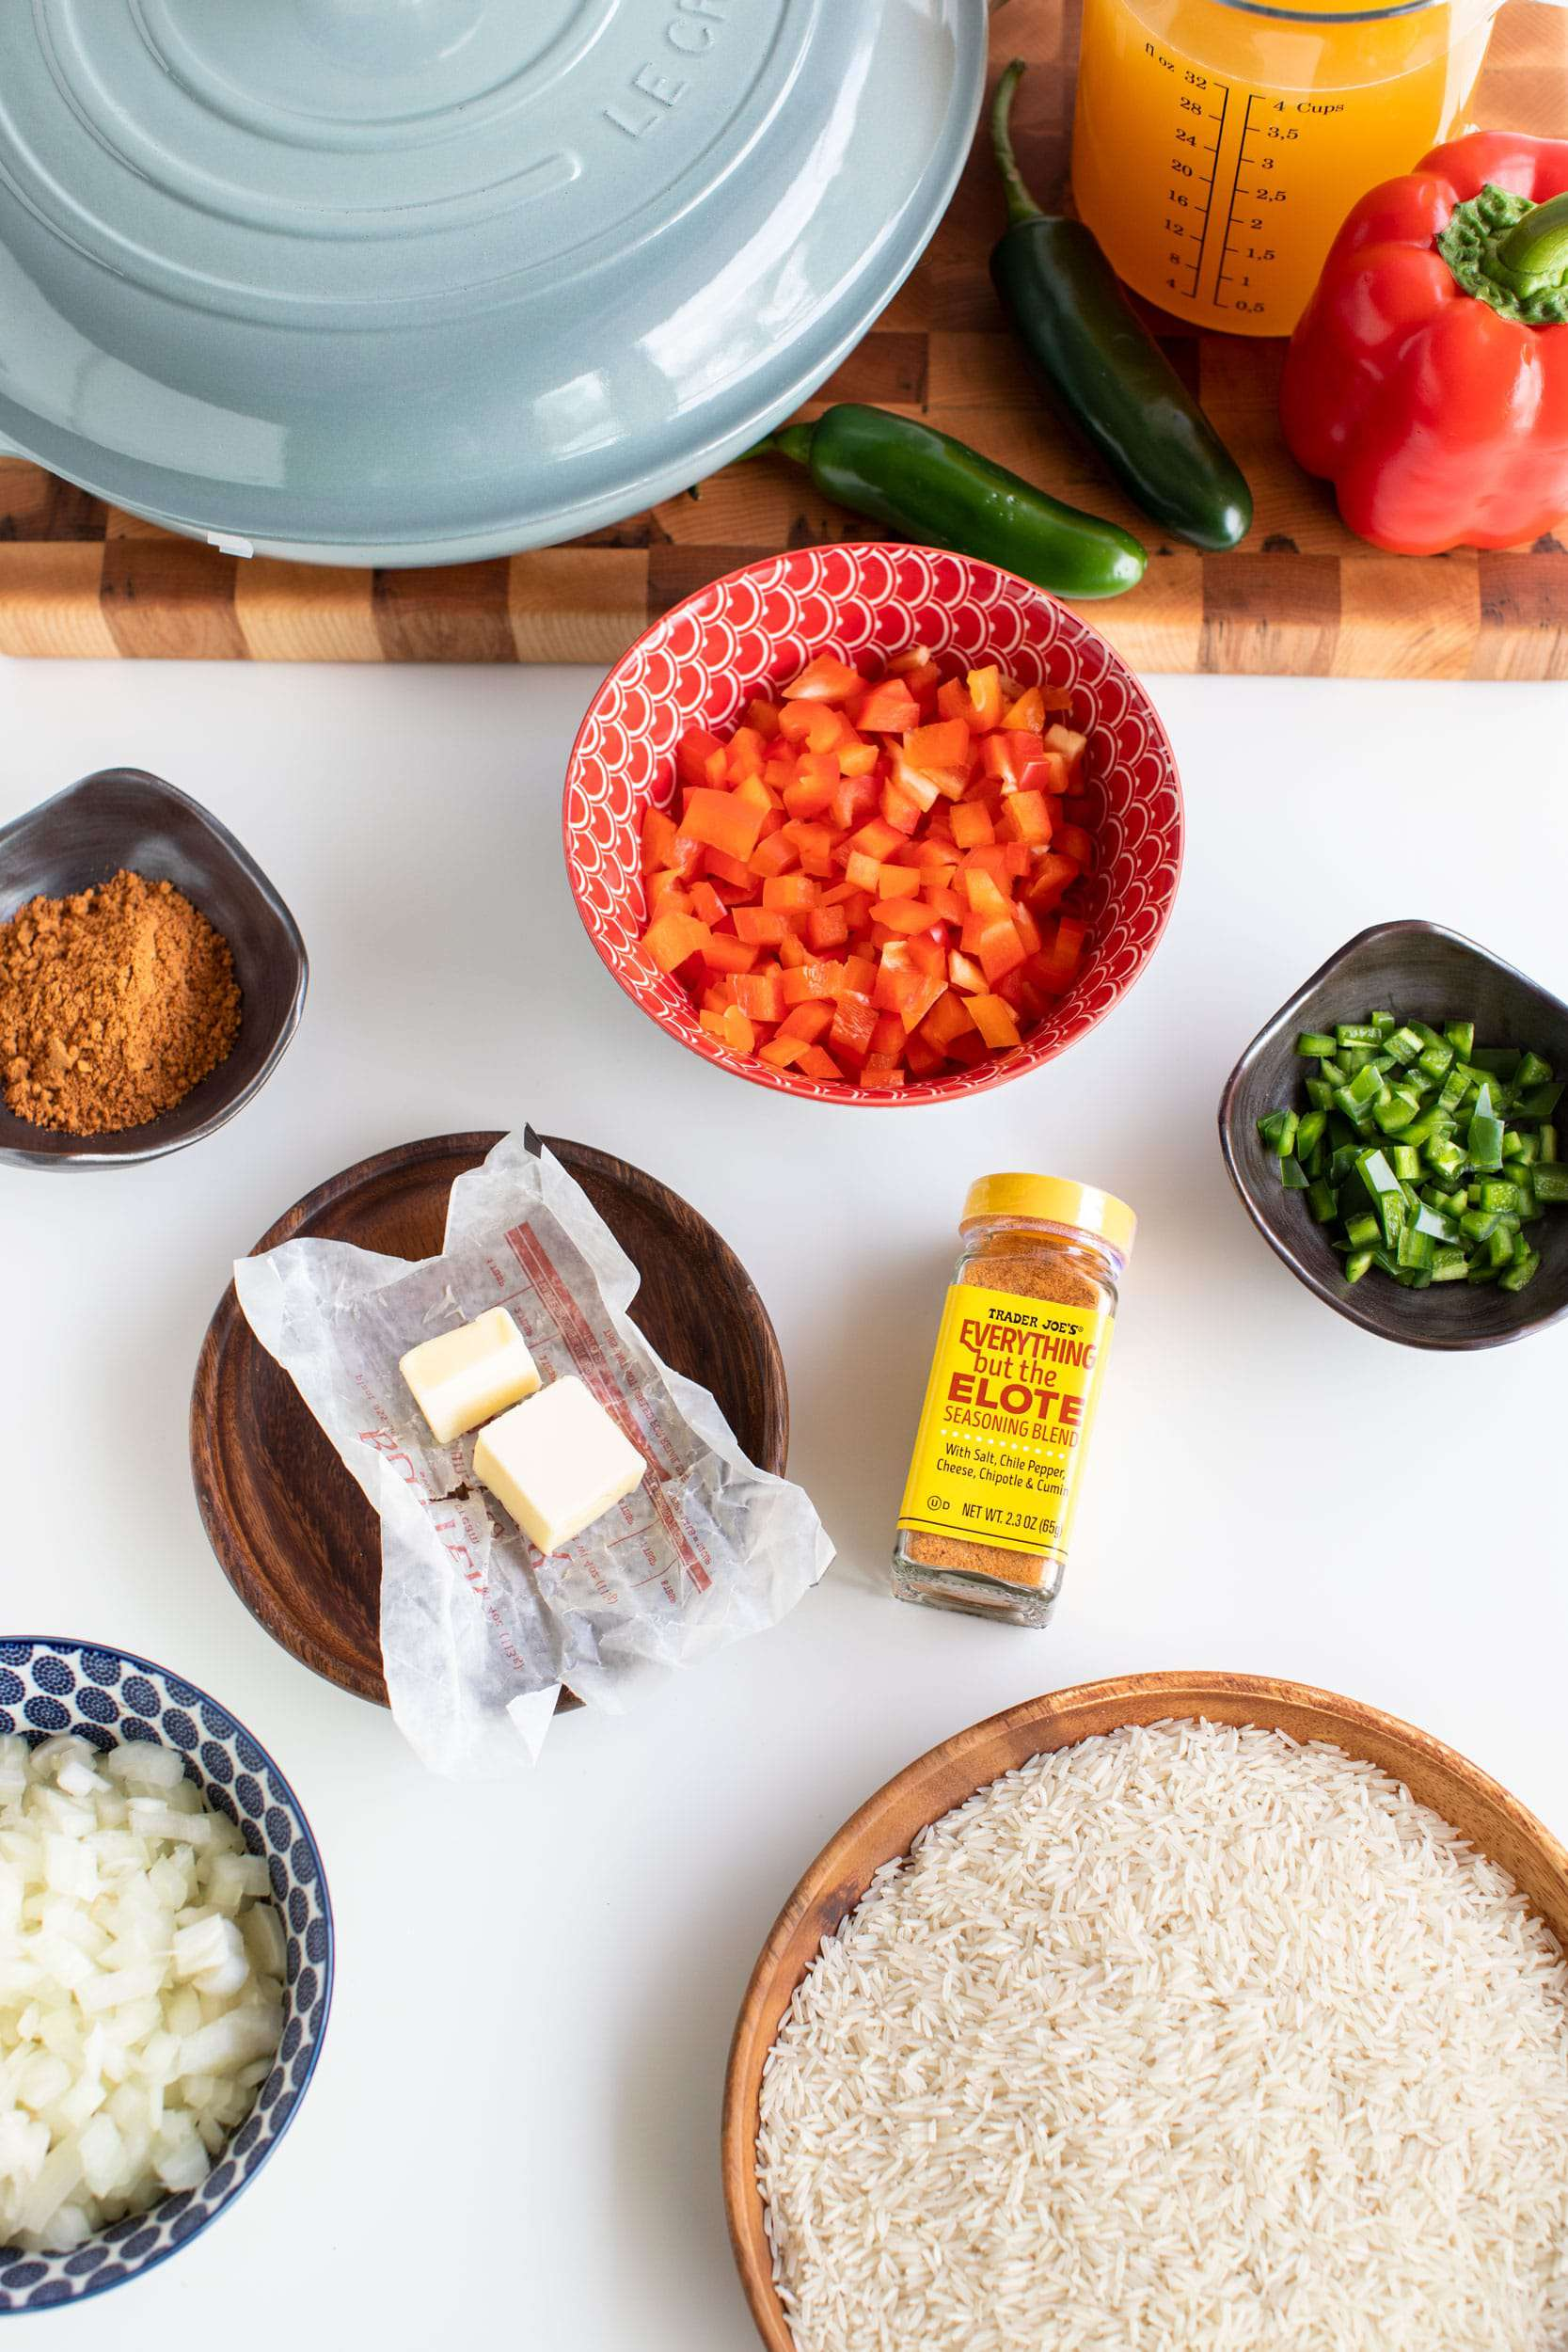 Ingredients prepped and laid out to make Everything but the Elote Chicken & Rice